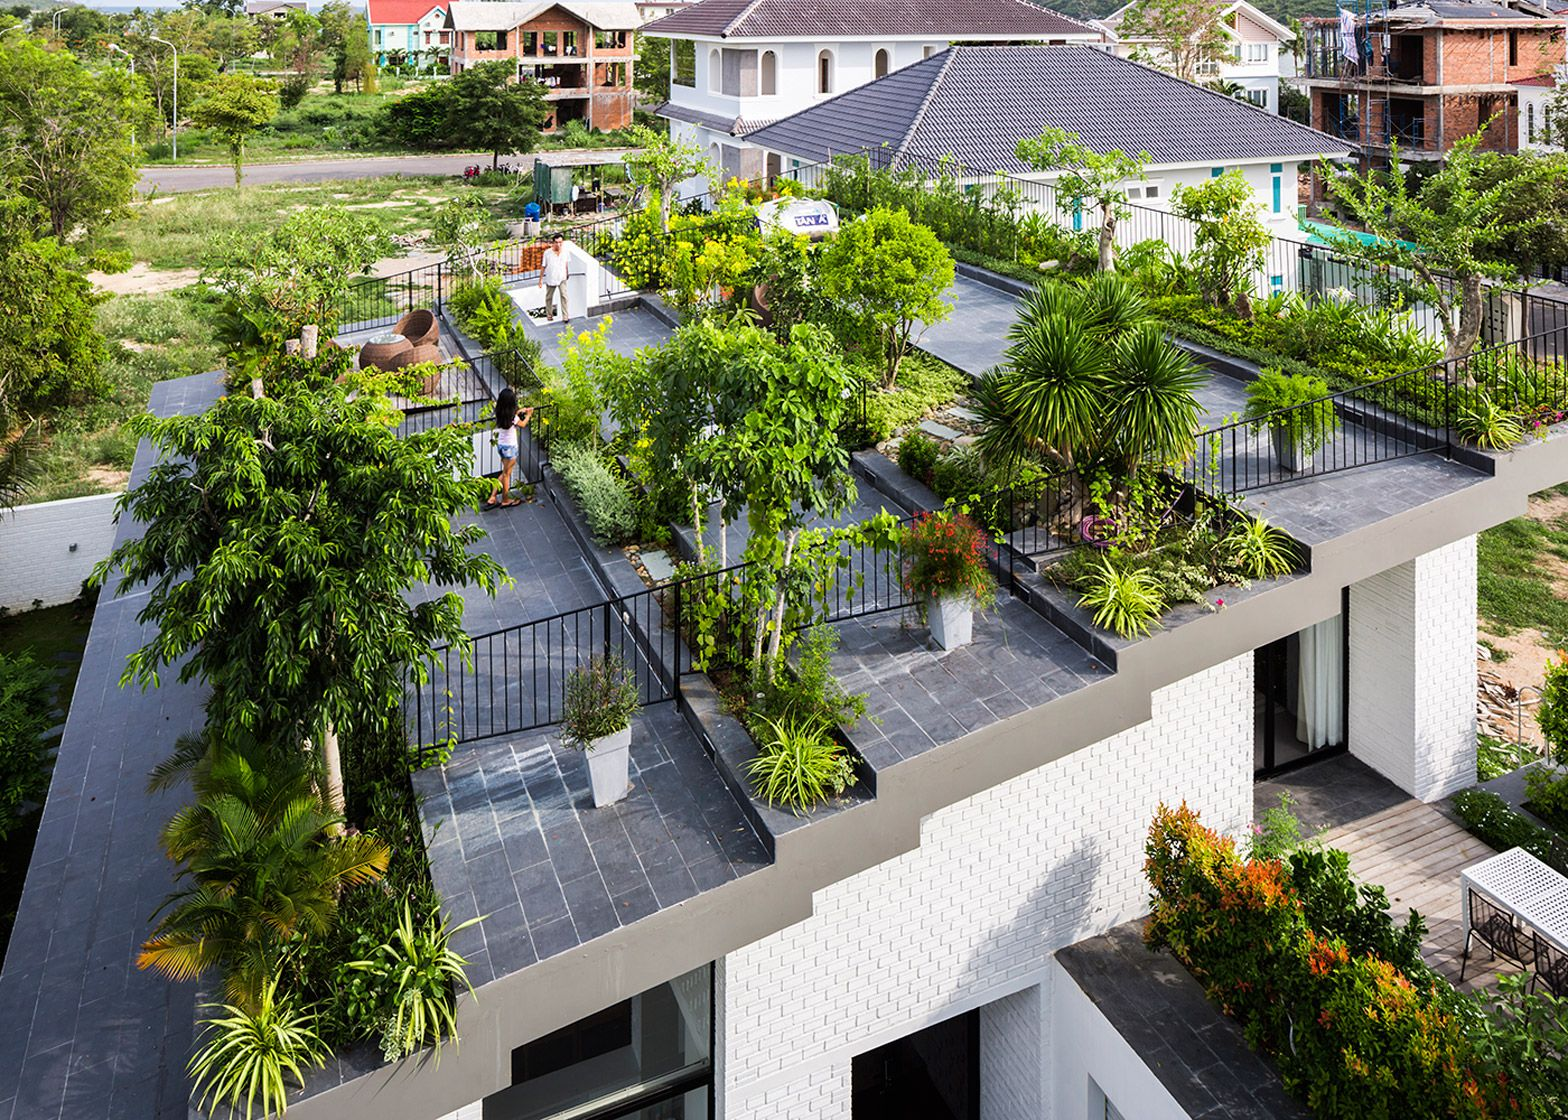 Stepped garden tops house by vo trong nghia and masaaki for Rooftop gardening